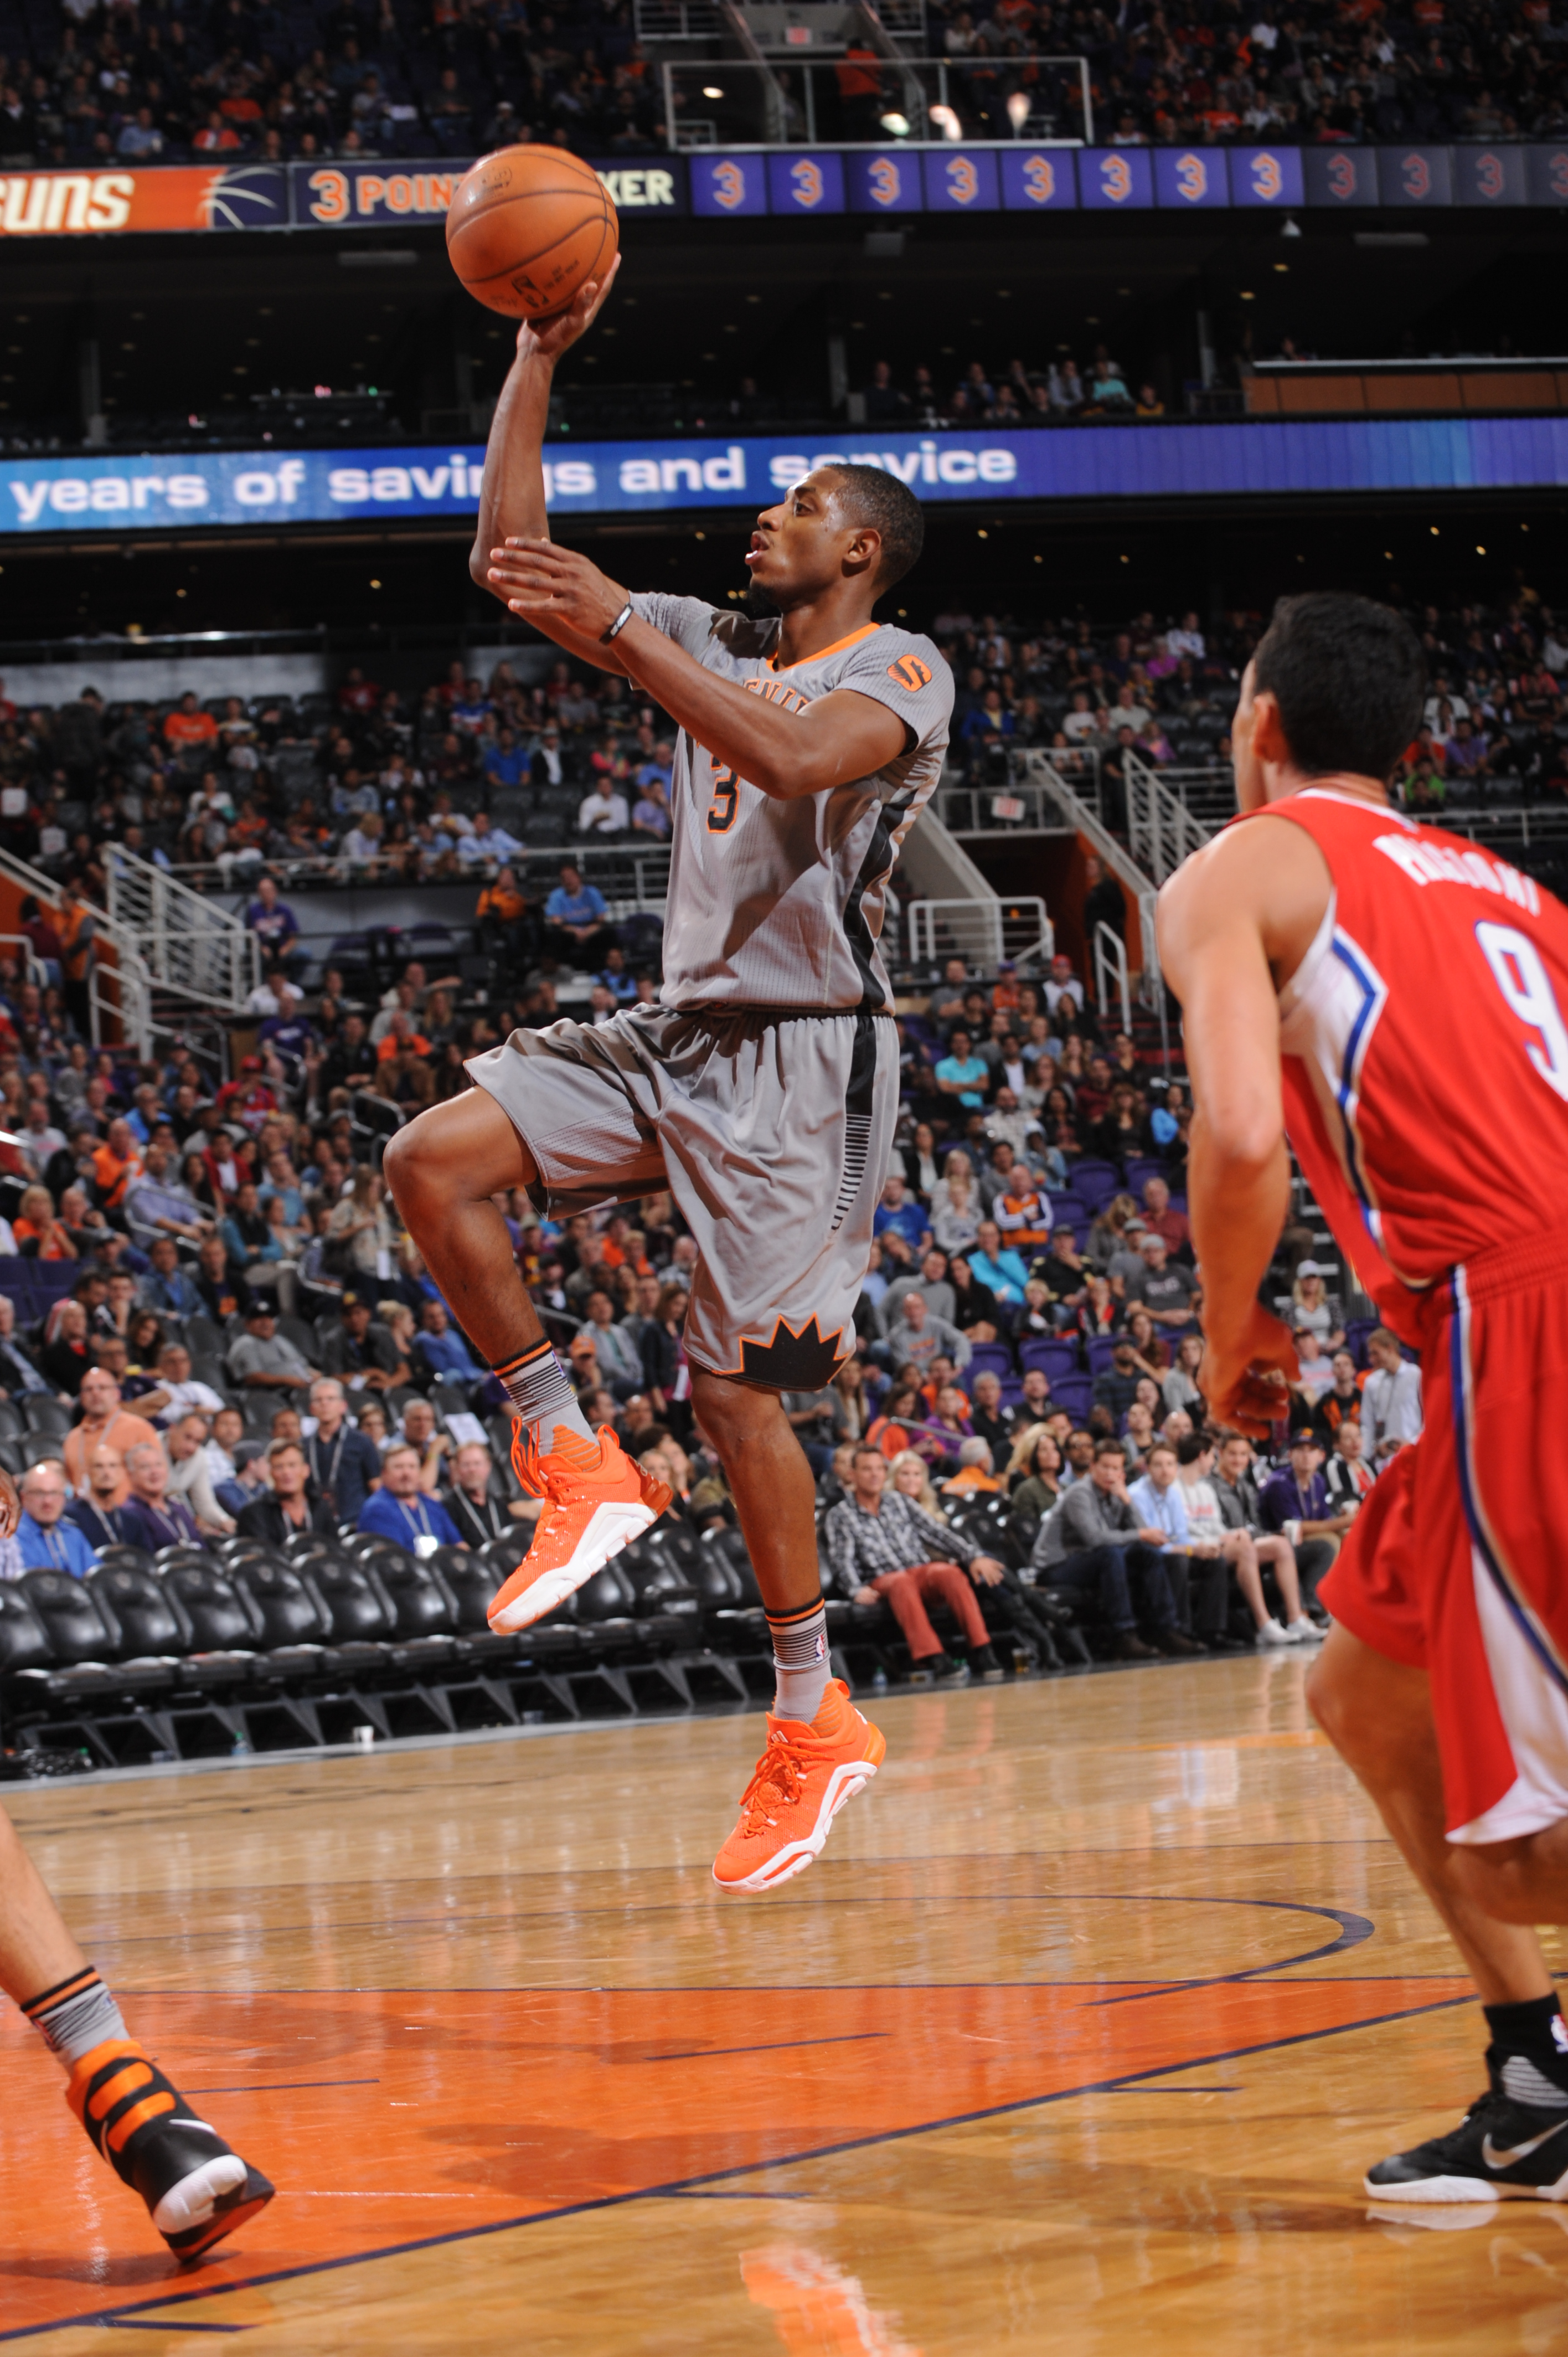 PHOENIX, AZ - NOVEMBER 12: Brandon Knight #3 of the Phoenix Suns drives for a shot against the Los Angeles Clippers on November 12, 2015, at Talking Stick Resort Arena in Phoenix, Arizona. (Photo by Barry Gossage/NBAE via Getty Images)